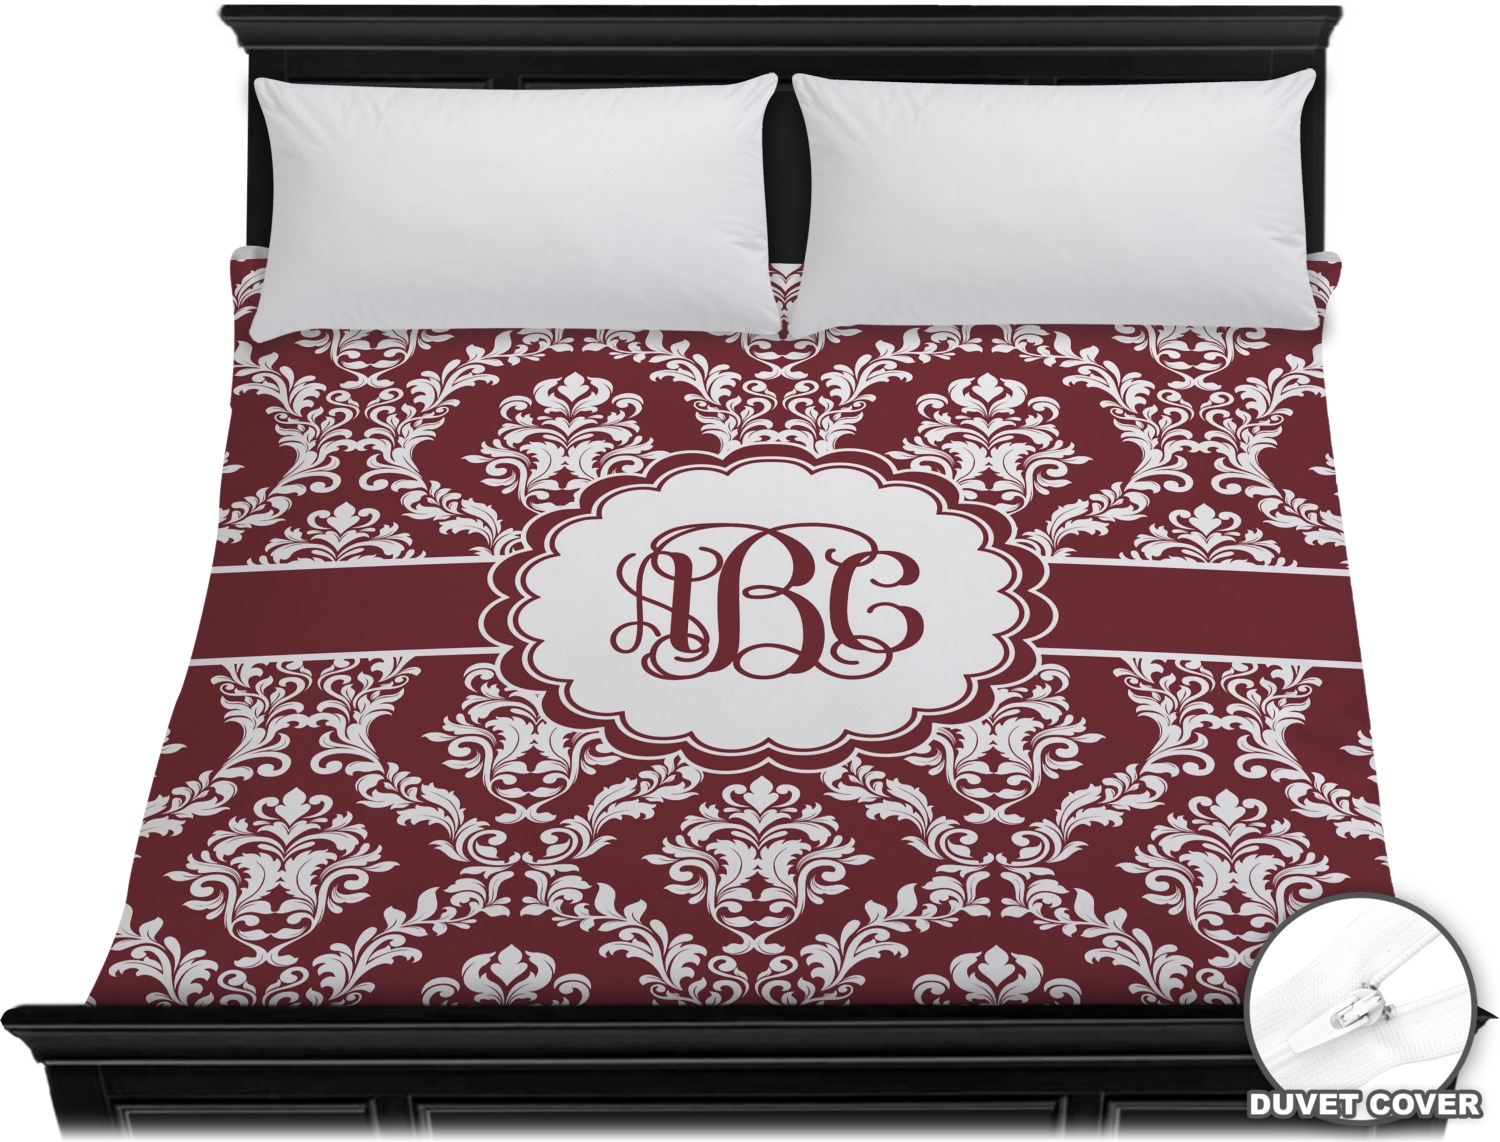 White Duvet Cover King Maroon And White Duvet Cover King Personalized